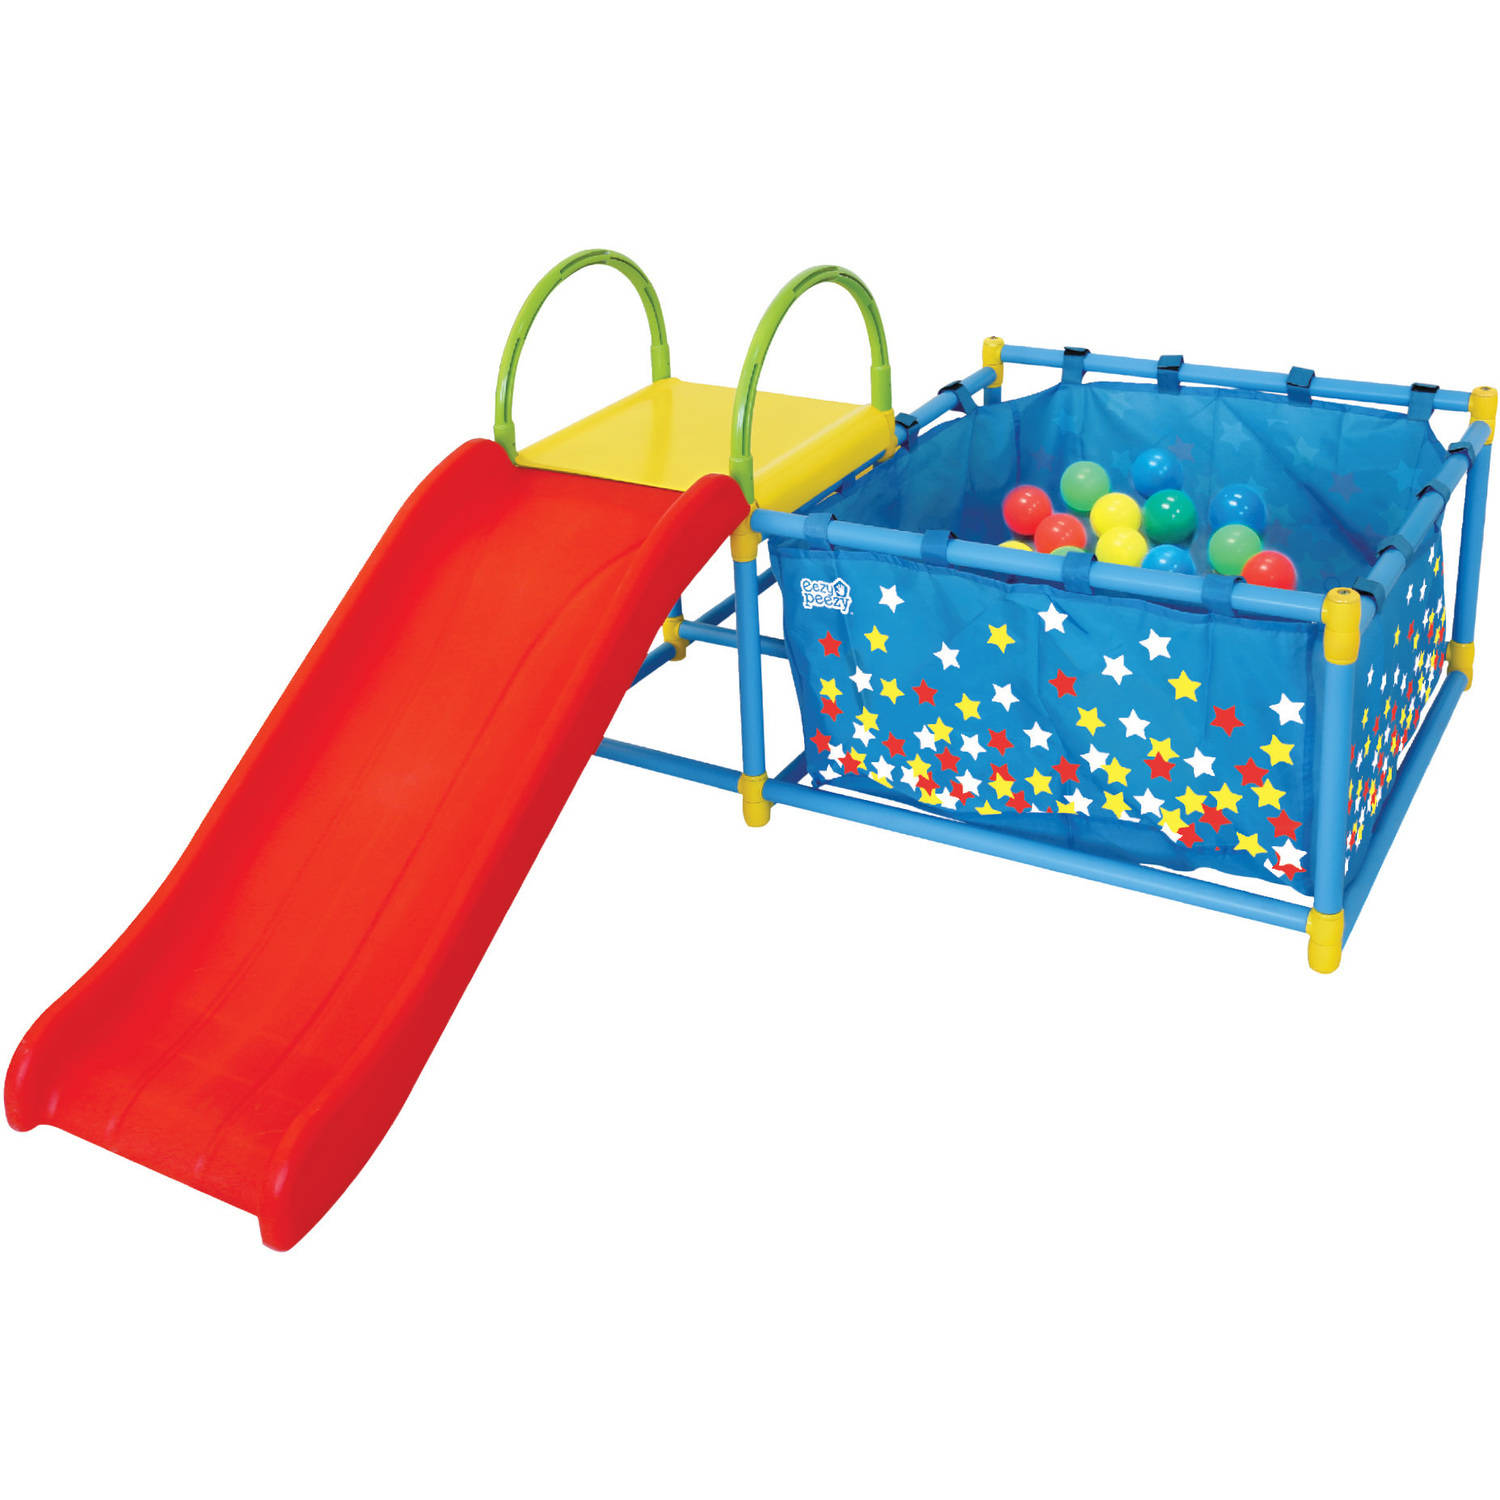 National Sporting Goods Eezy Peezy Fold-It Ball Pit with ...